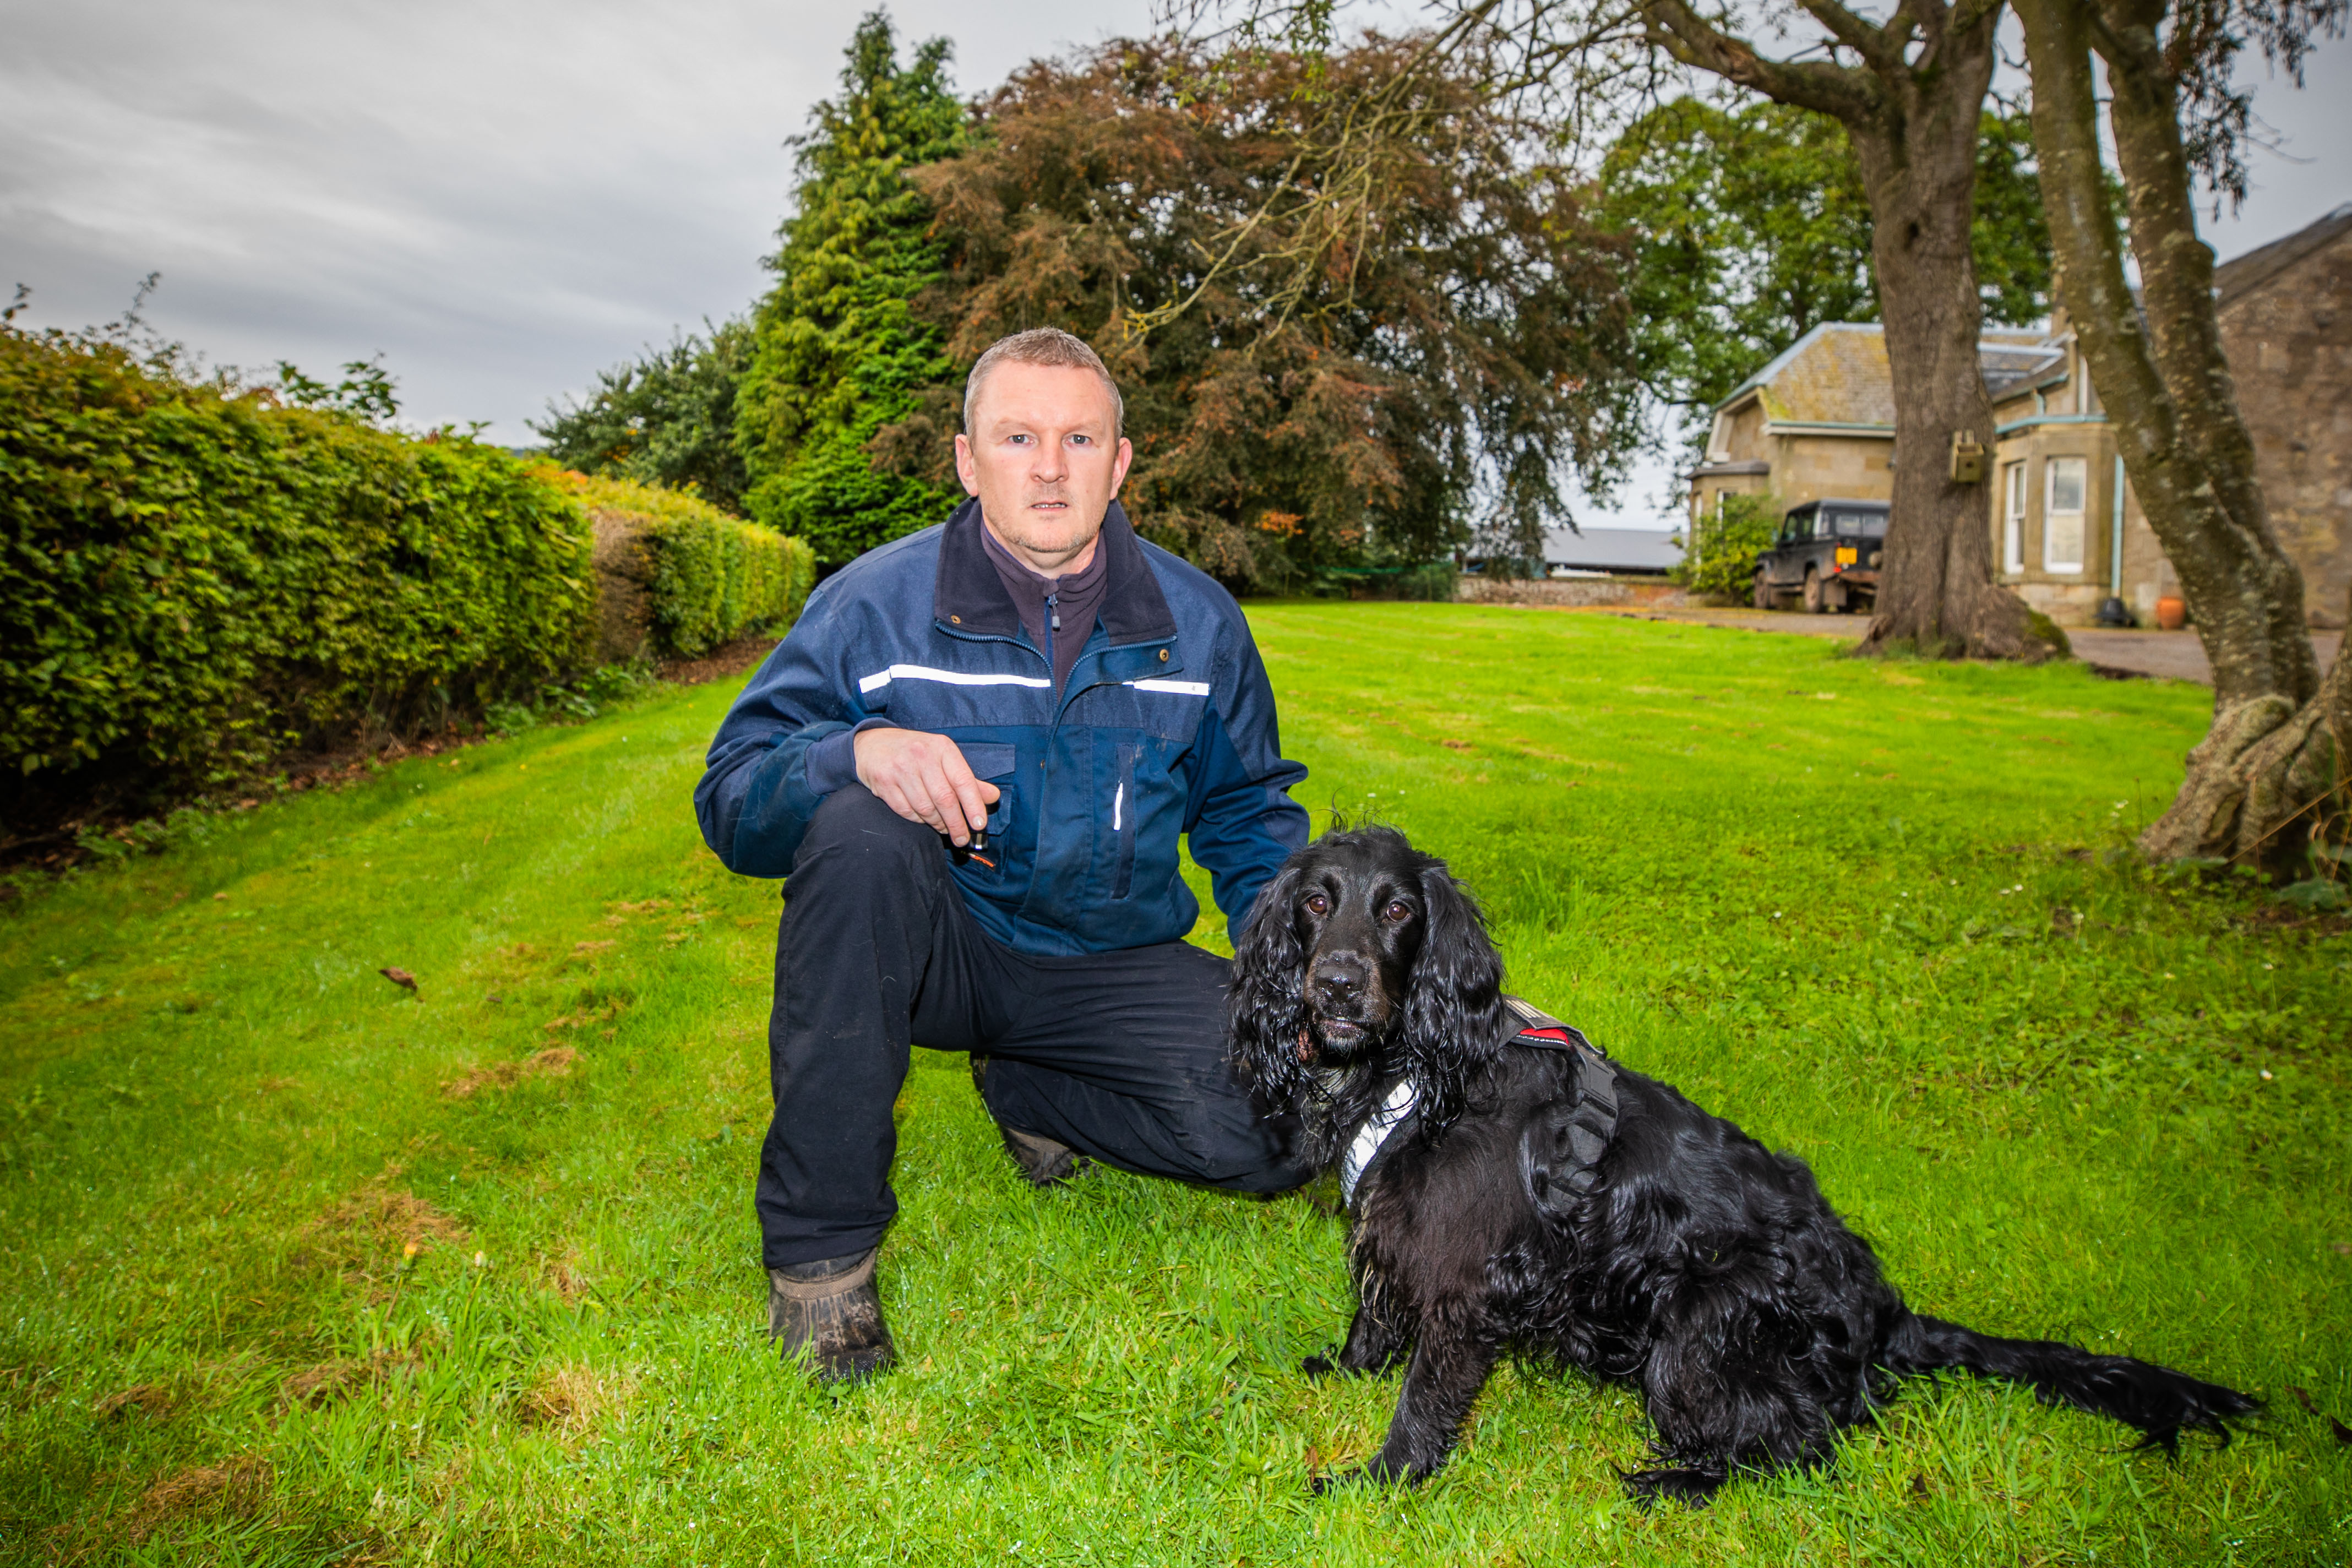 John Miskelly with his dog Bramble.